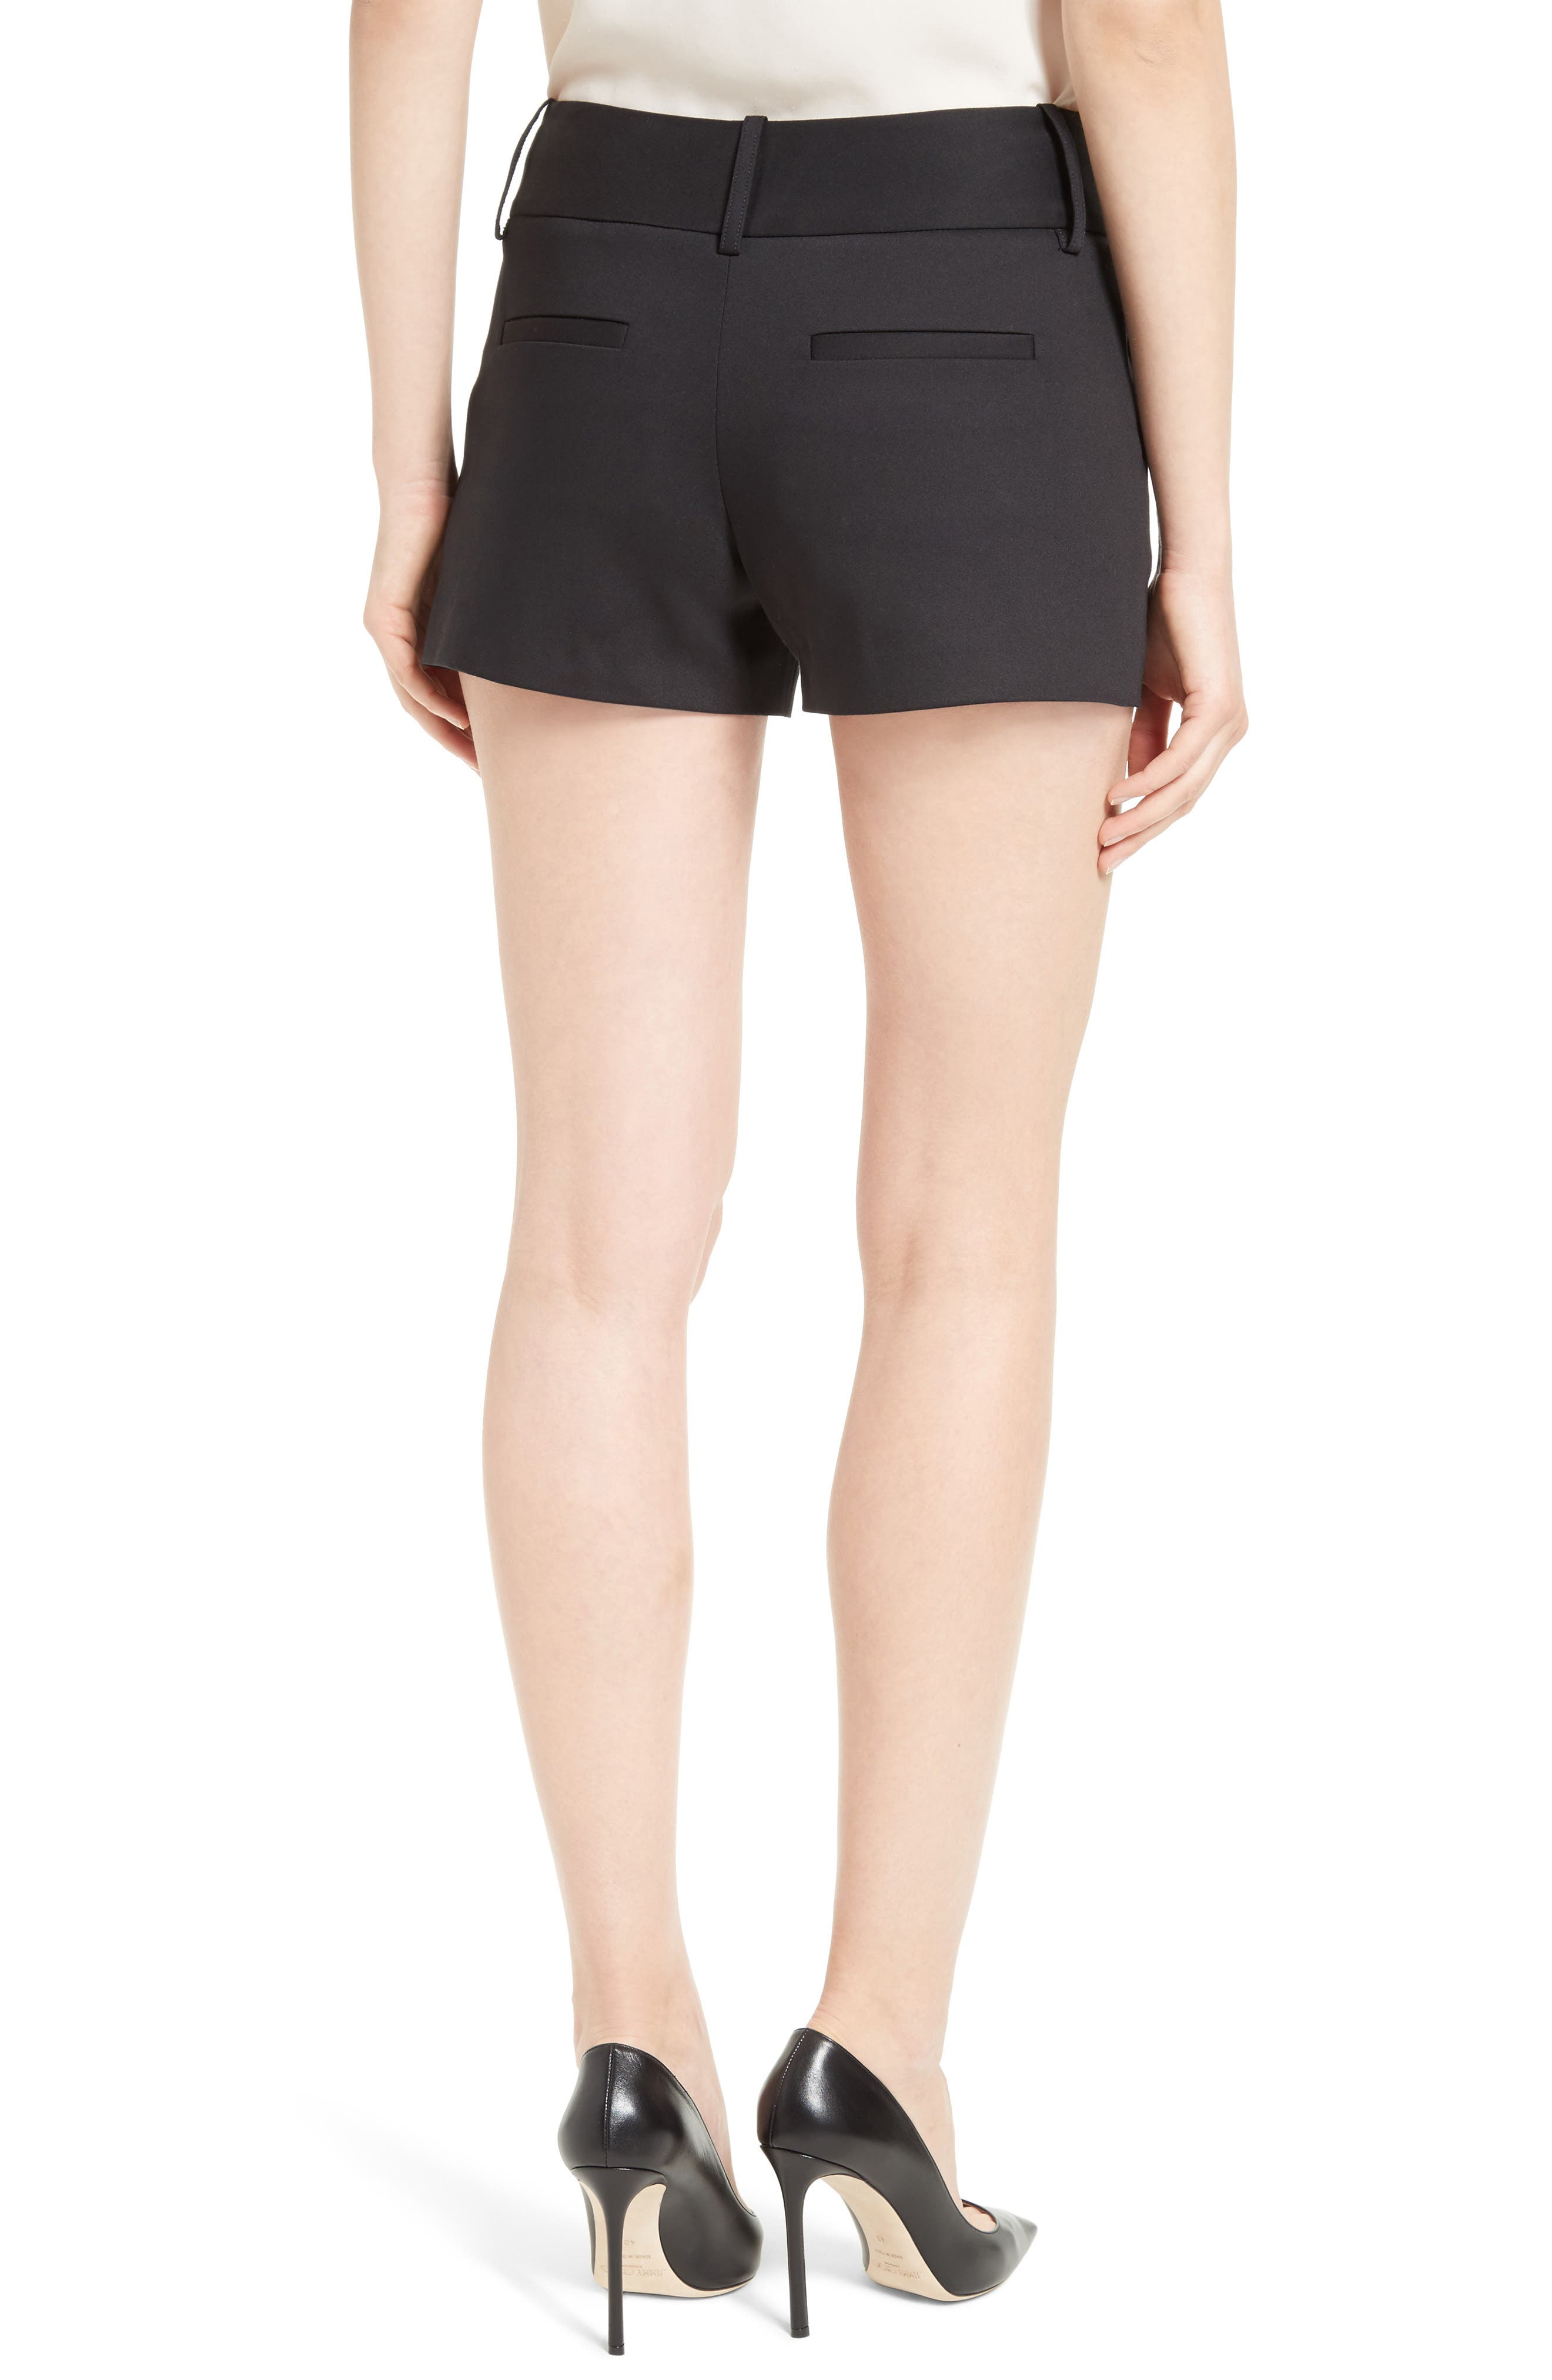 Cady Cotton Blend Shorts,                             Alternate thumbnail 2, color,                             001